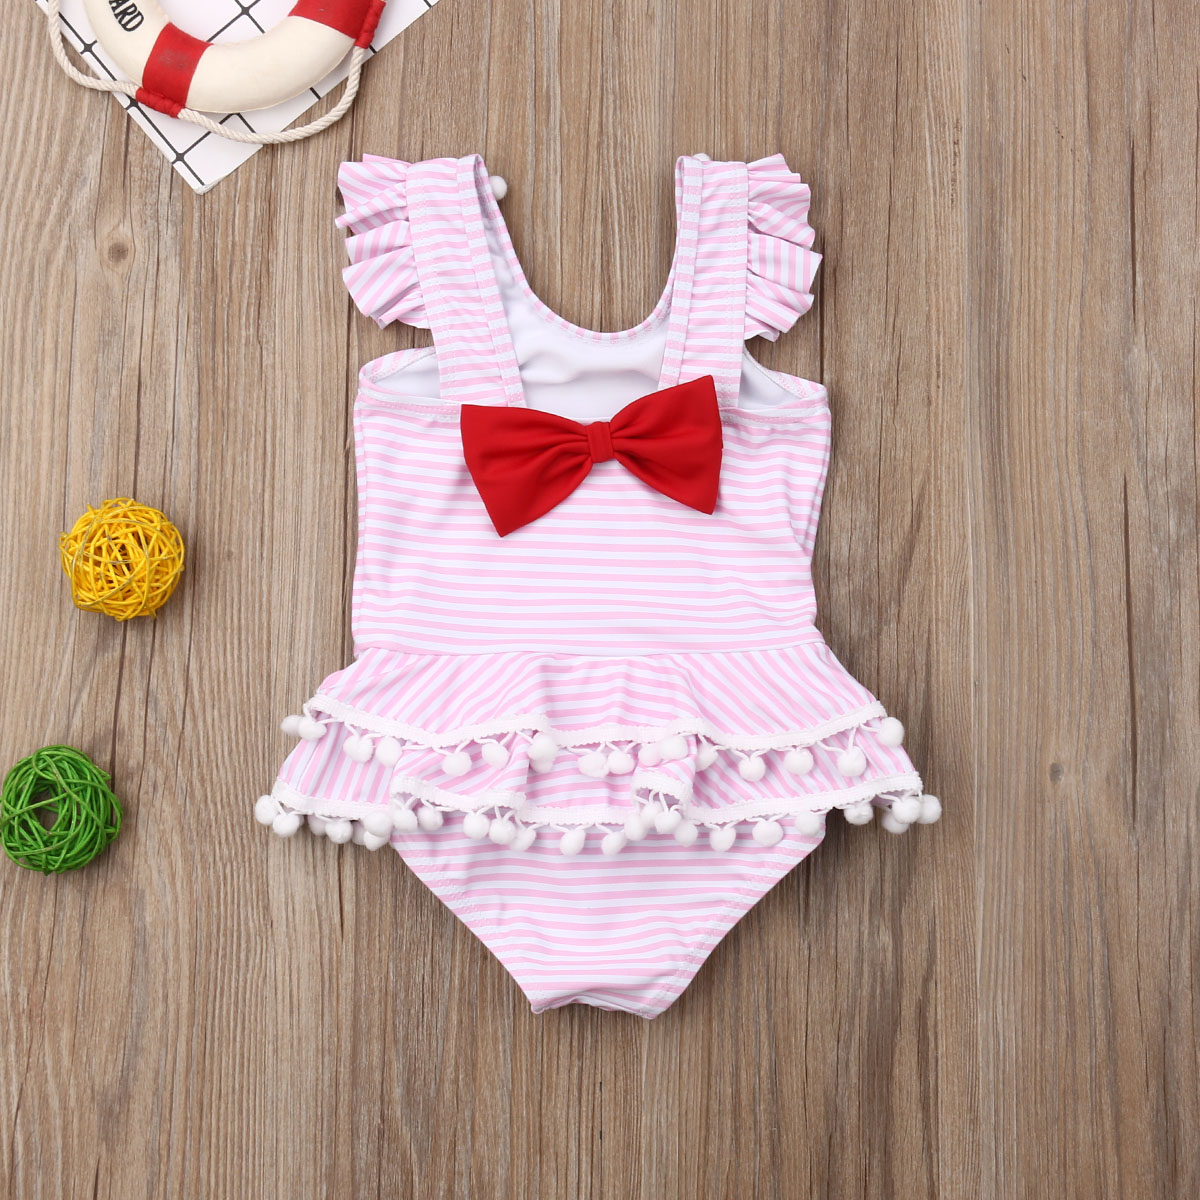 Summer Ruffles Sleeve Toddler Kids Baby Girls Striped Bikini Bowknot Swimwear Swimsuit Bathing Suit Beach Clothes Bodysuits